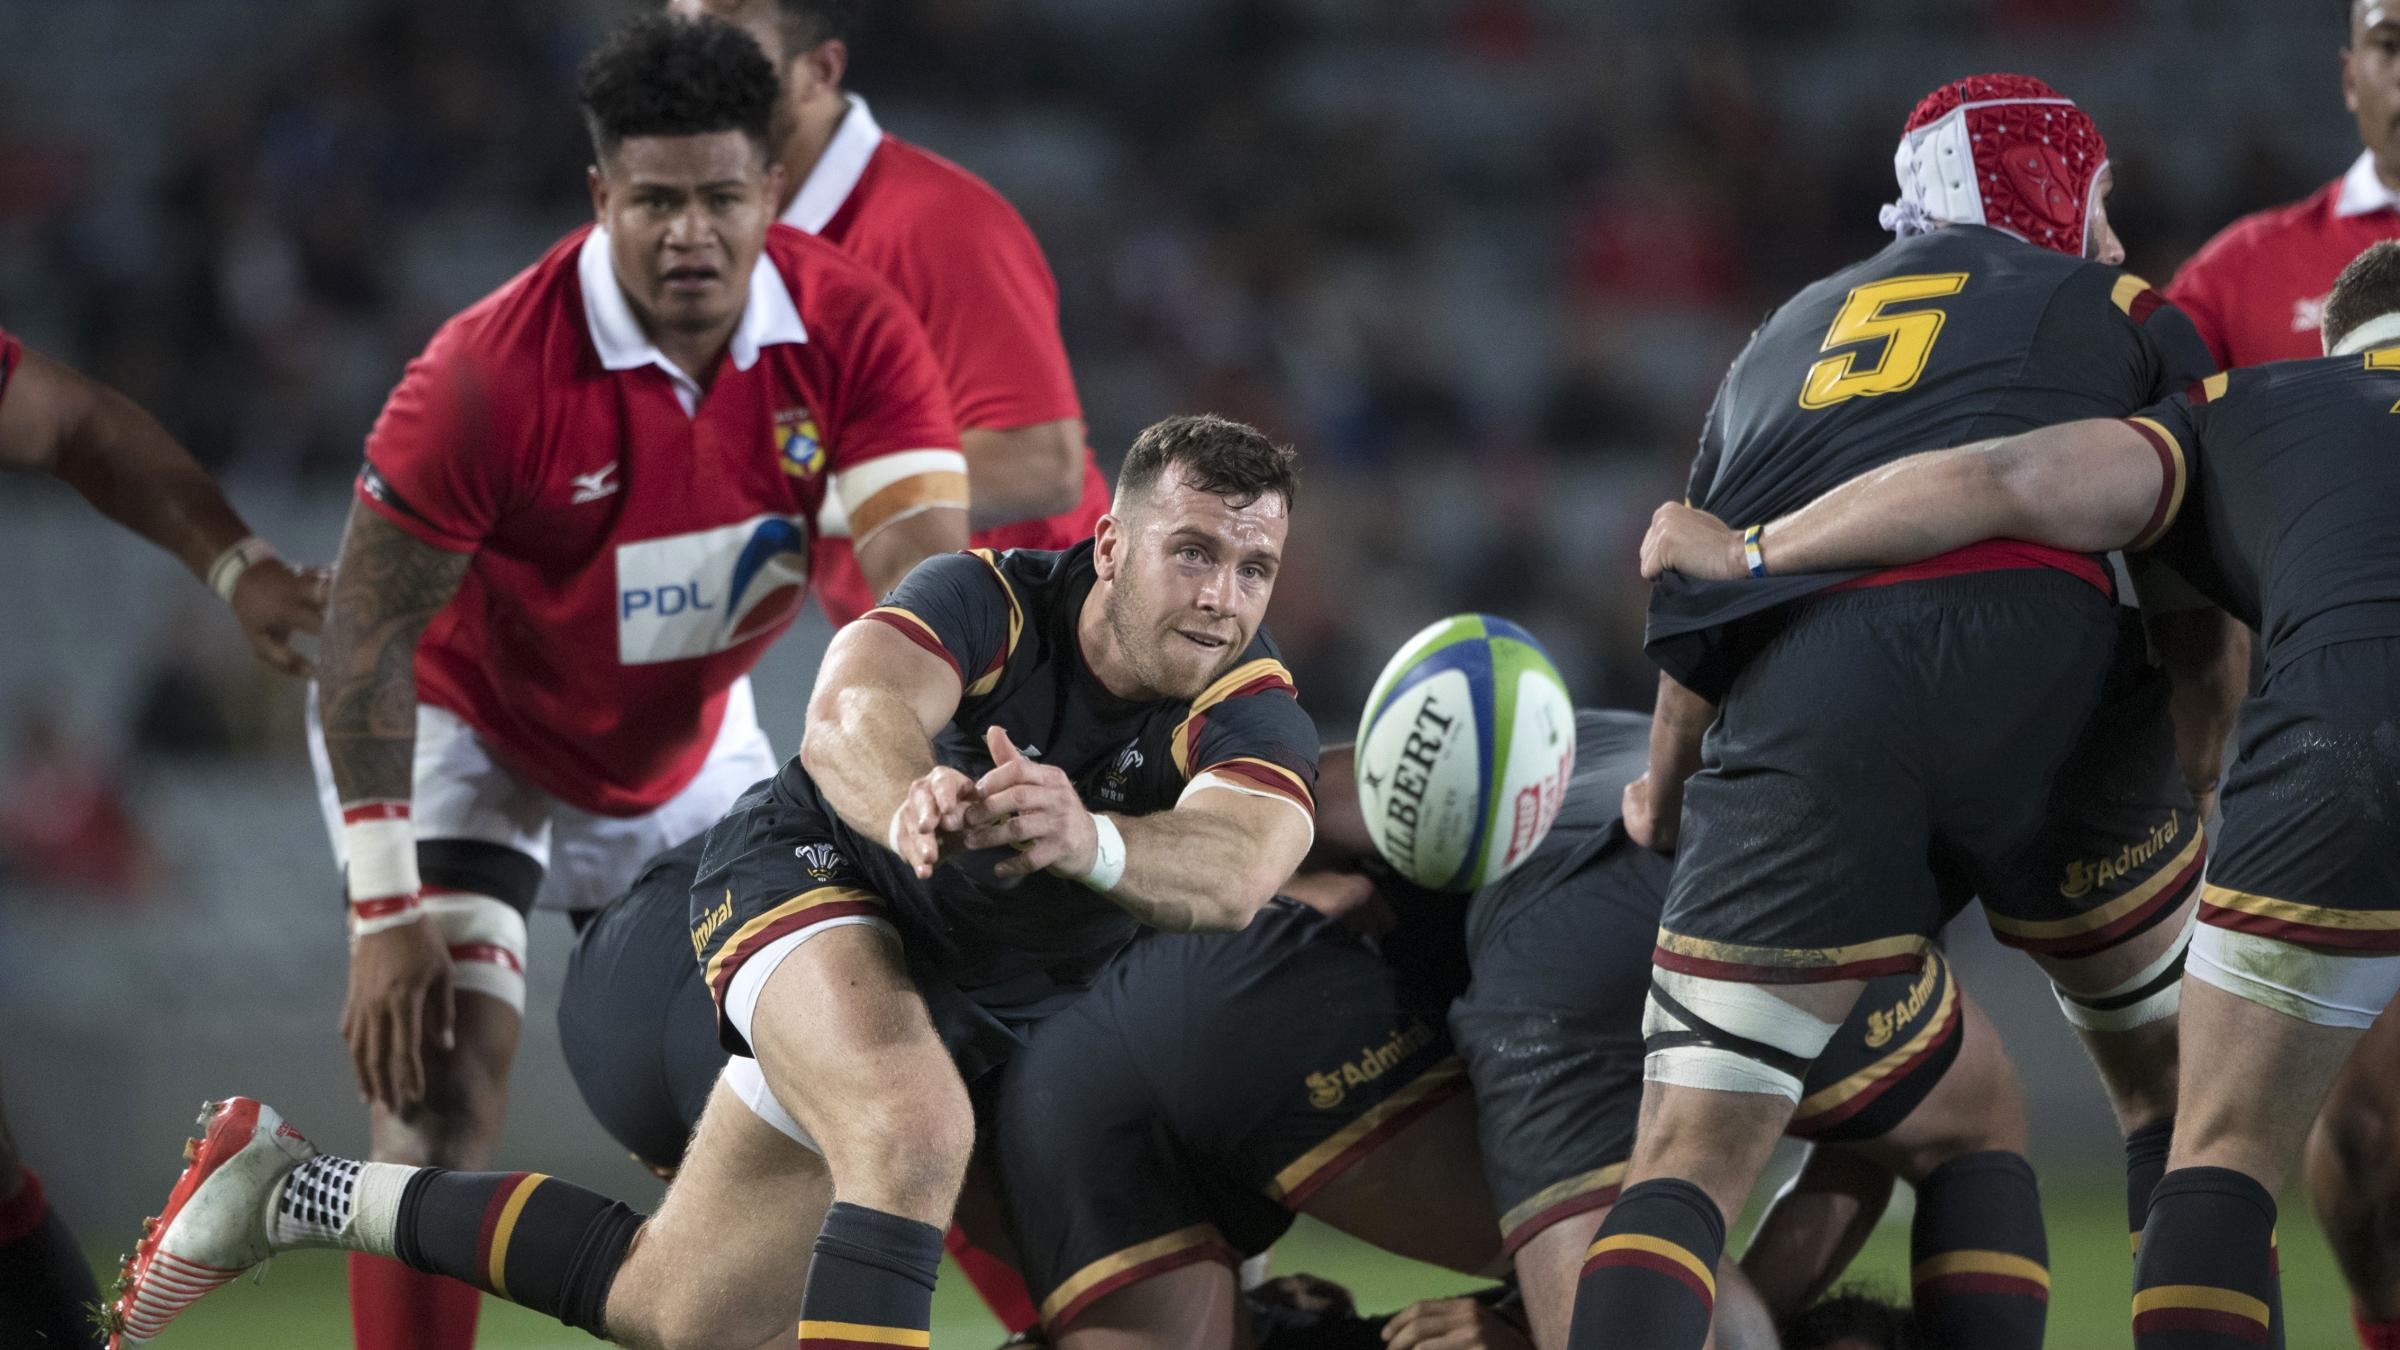 Wales beat Tonga in rugby Test